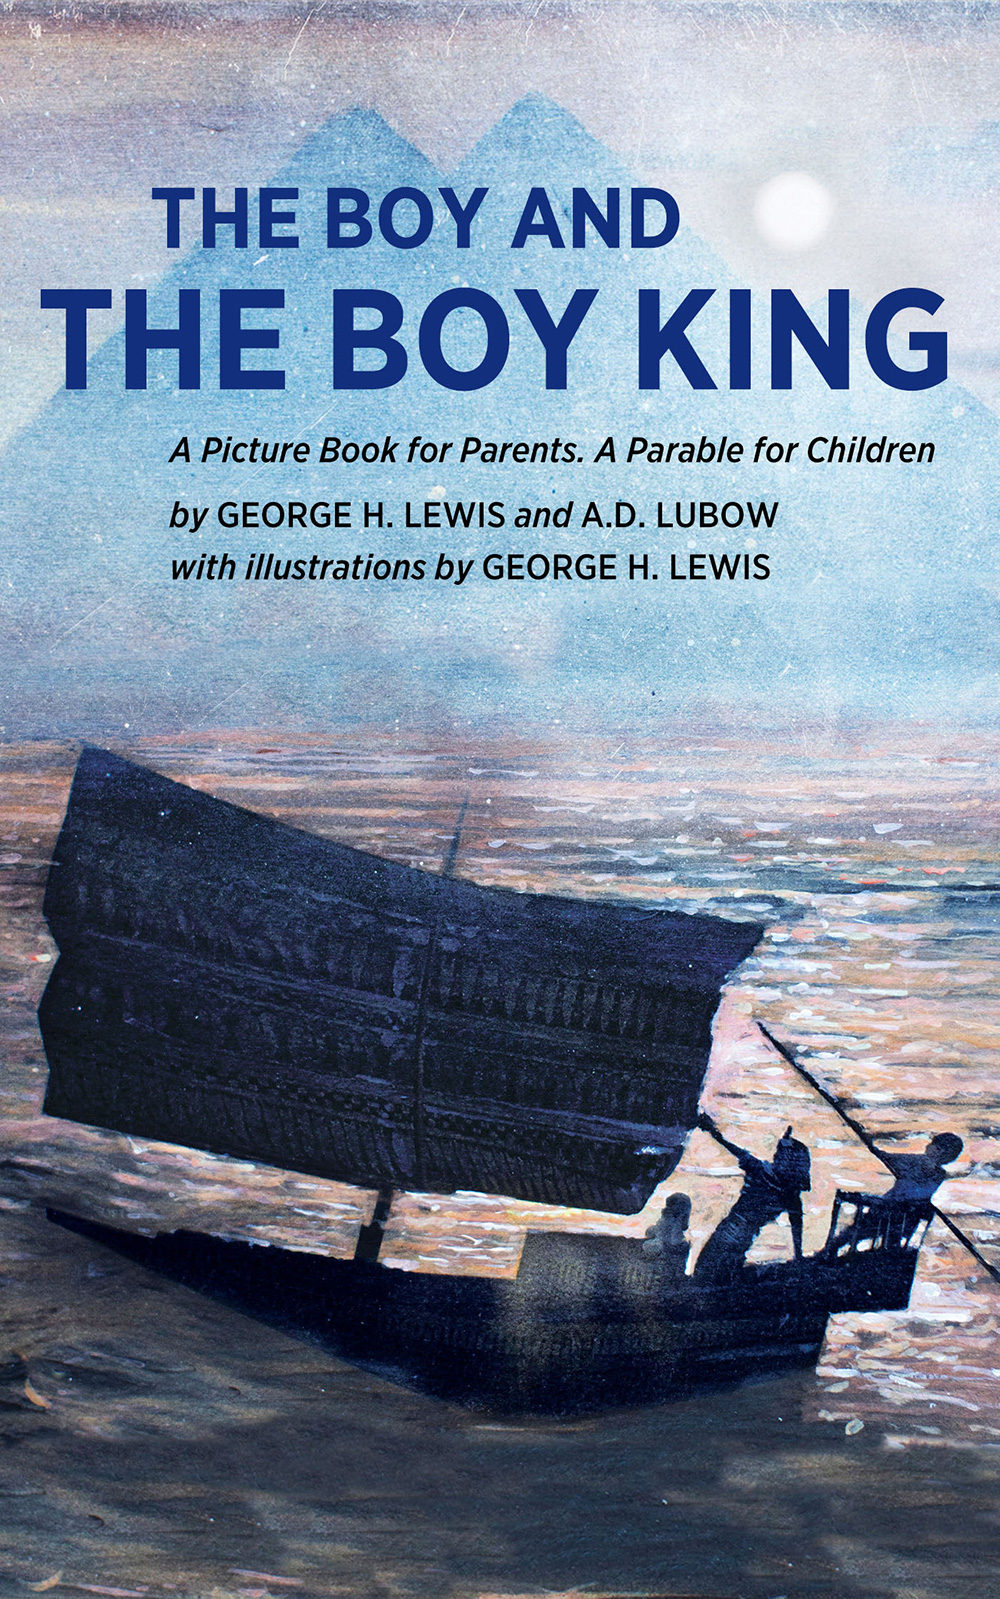 The Boy and the Boy King book cover